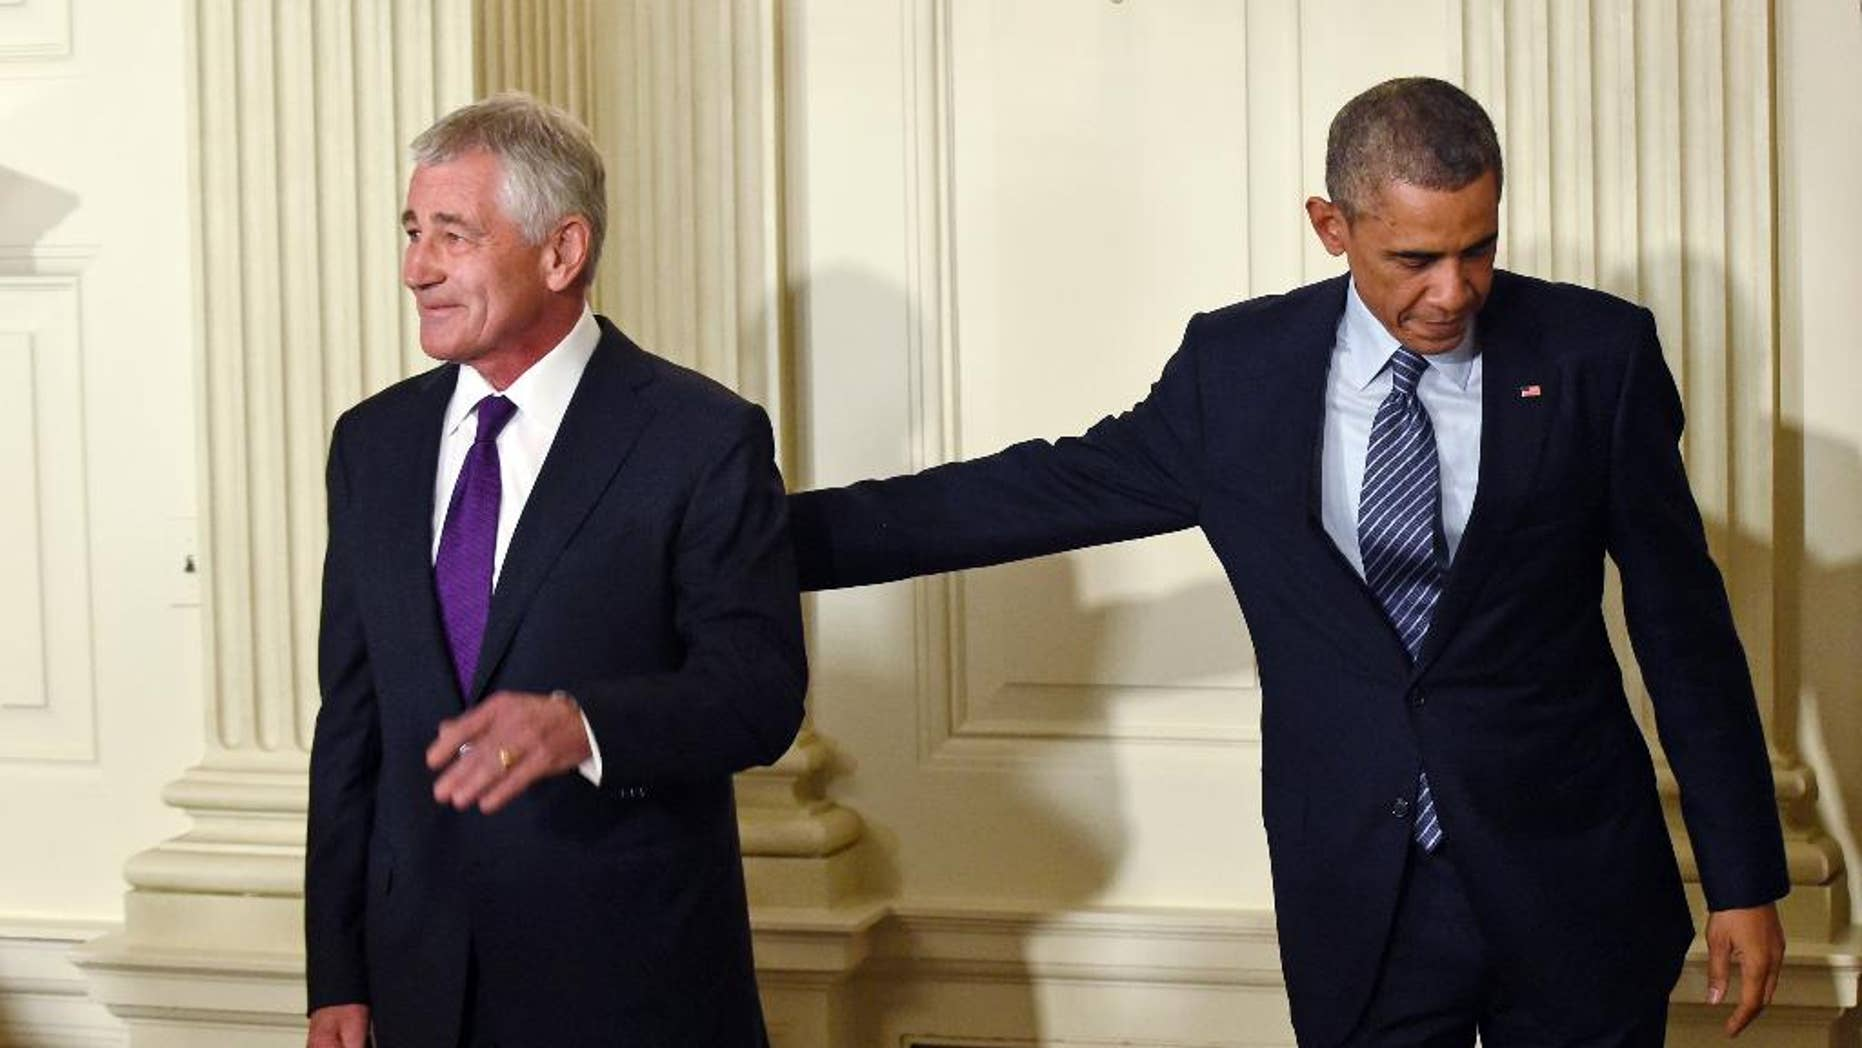 President Barack Obama, left, reaches over to touch Defense Secretary Chuck Hagel, left, following an announcement of Hagel's resignation during an event in the State Dining Room of the White House in Washington, Monday, Nov. 24, 2014. Hagel is stepping down under pressure from Obama's Cabinet, senior administration officials said Monday, following a tenure in which he has struggled to break through the White House's insular foreign policy team. (AP Photo/Susan Walsh)